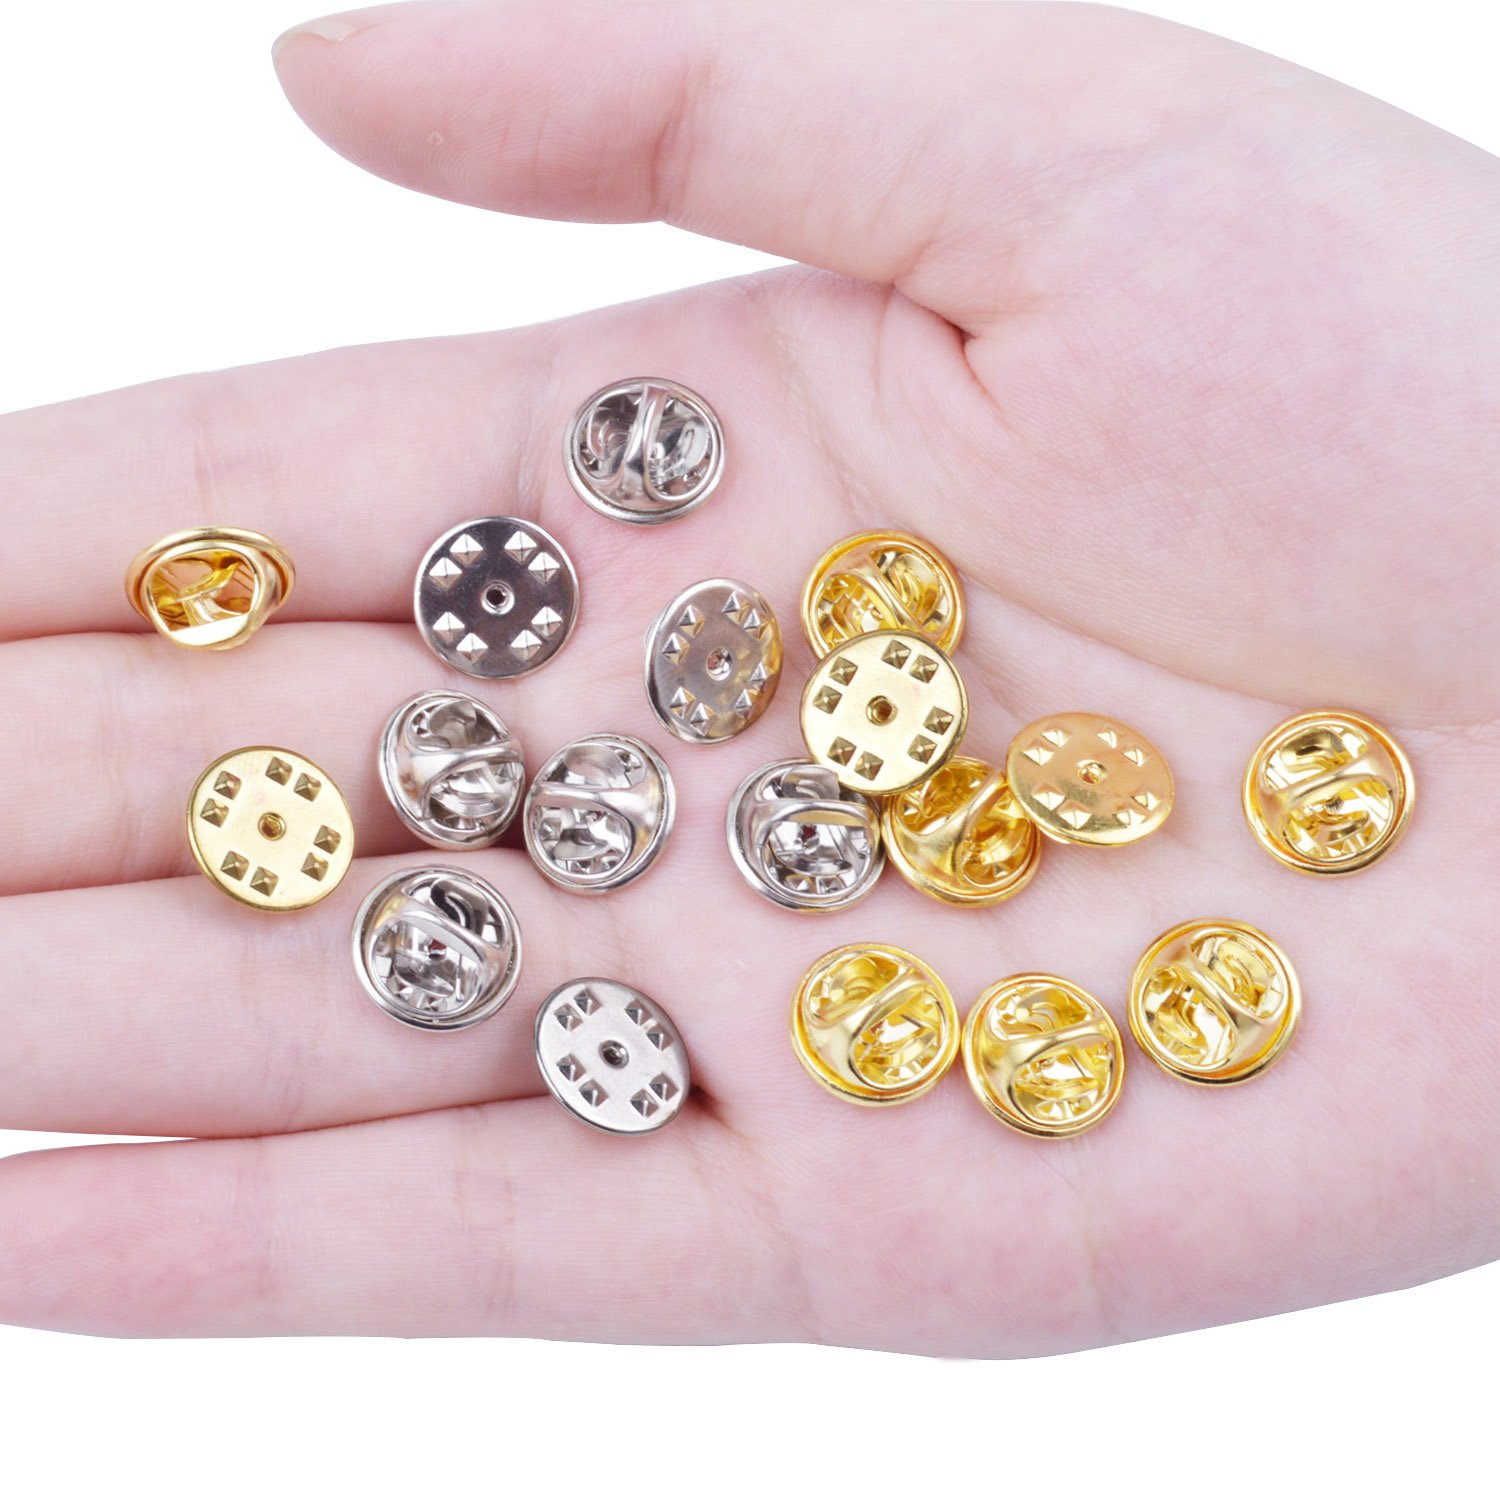 BronaGrand 100 Pcs Metal Pin Keepers Butterfly Clutch Badge Insignia Clutches Pin Backs Replacement Multicolor